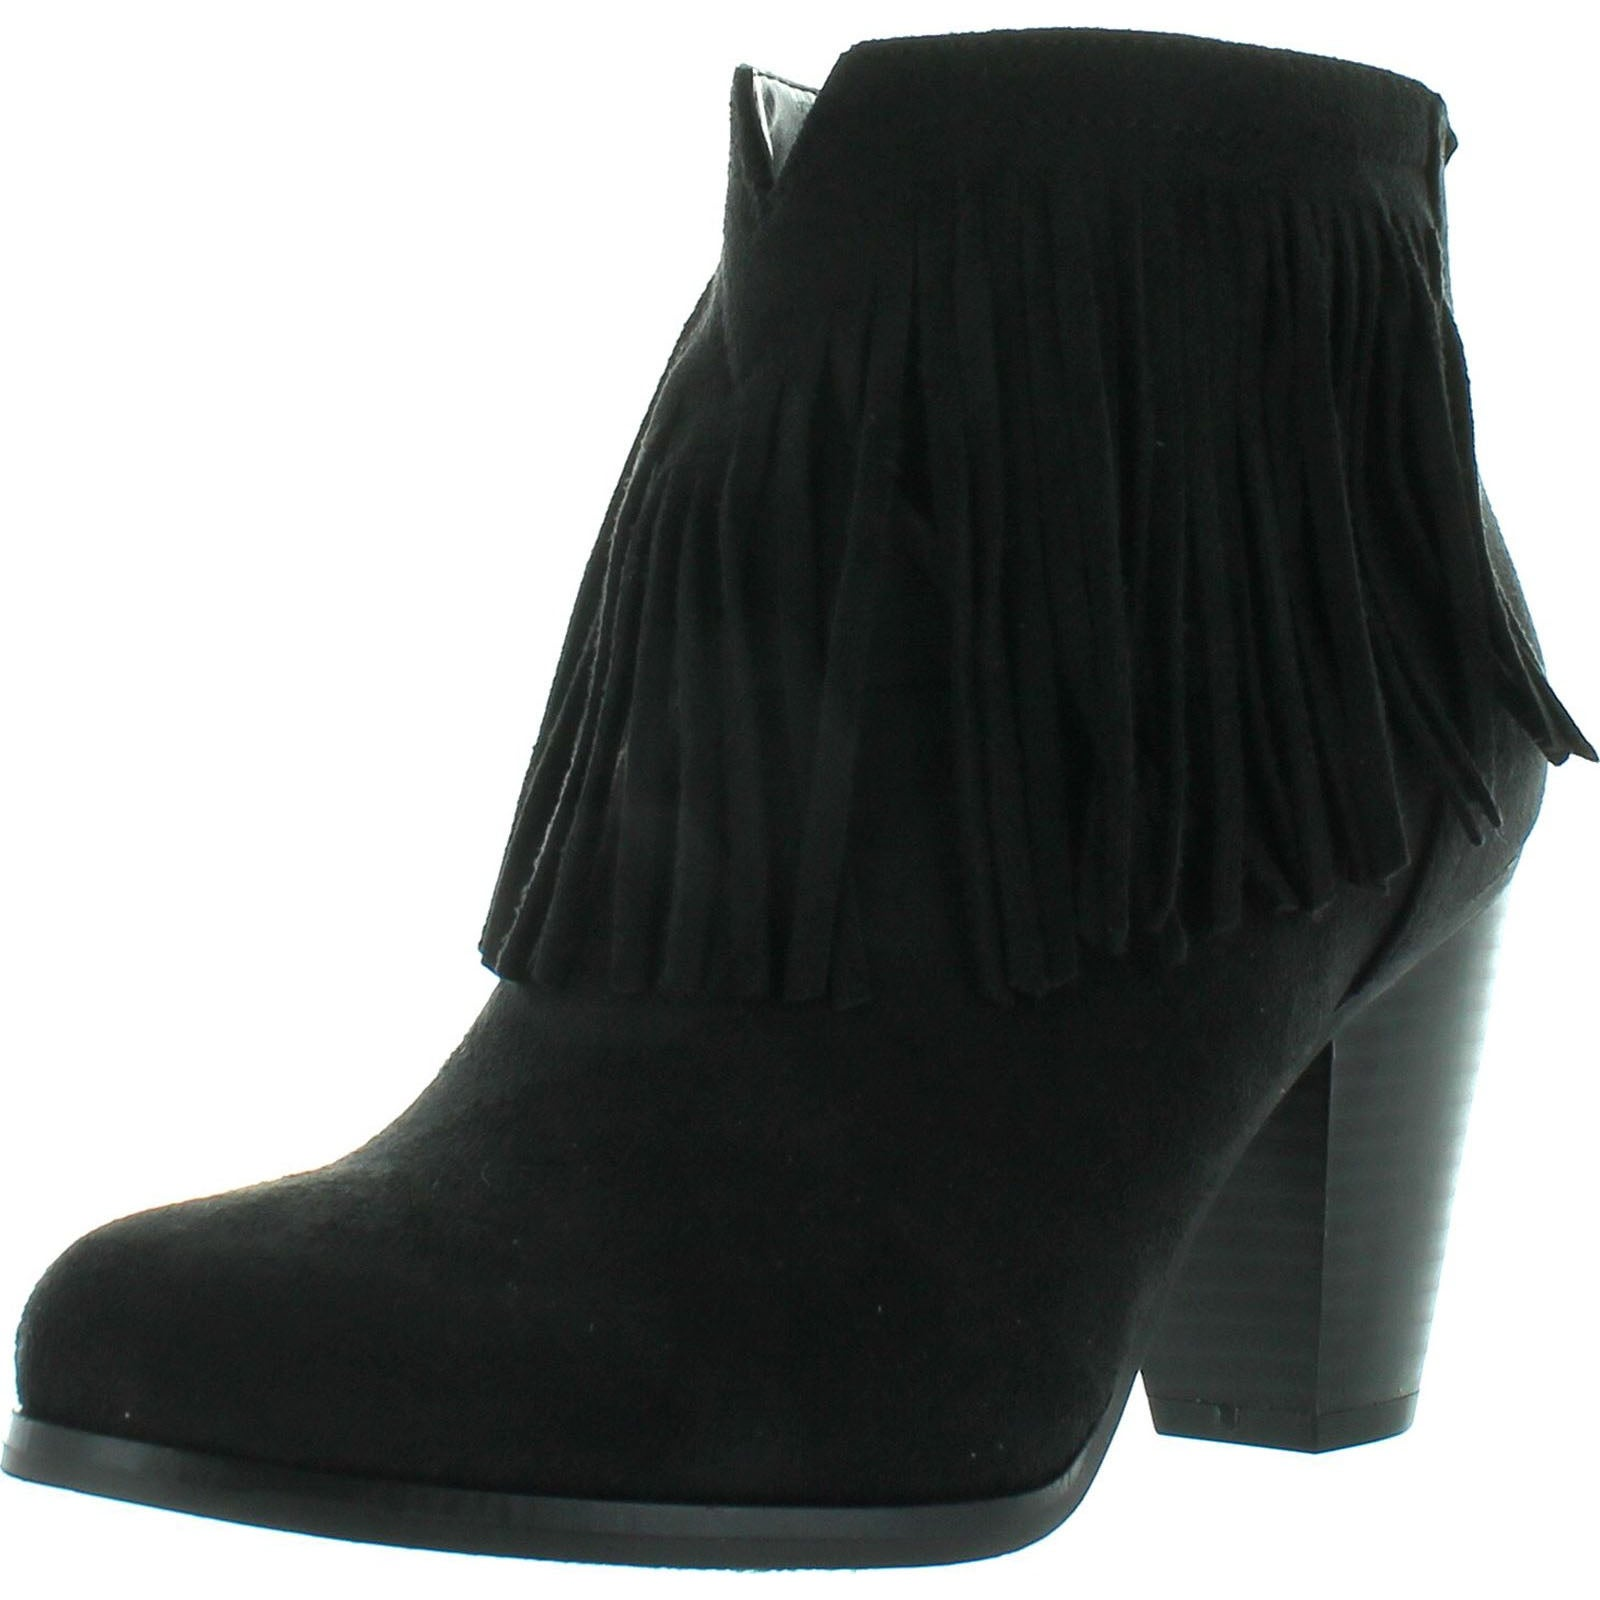 bcda1ce6f Buy Soda Women's Boots Online at Overstock | Our Best Women's Shoes Deals